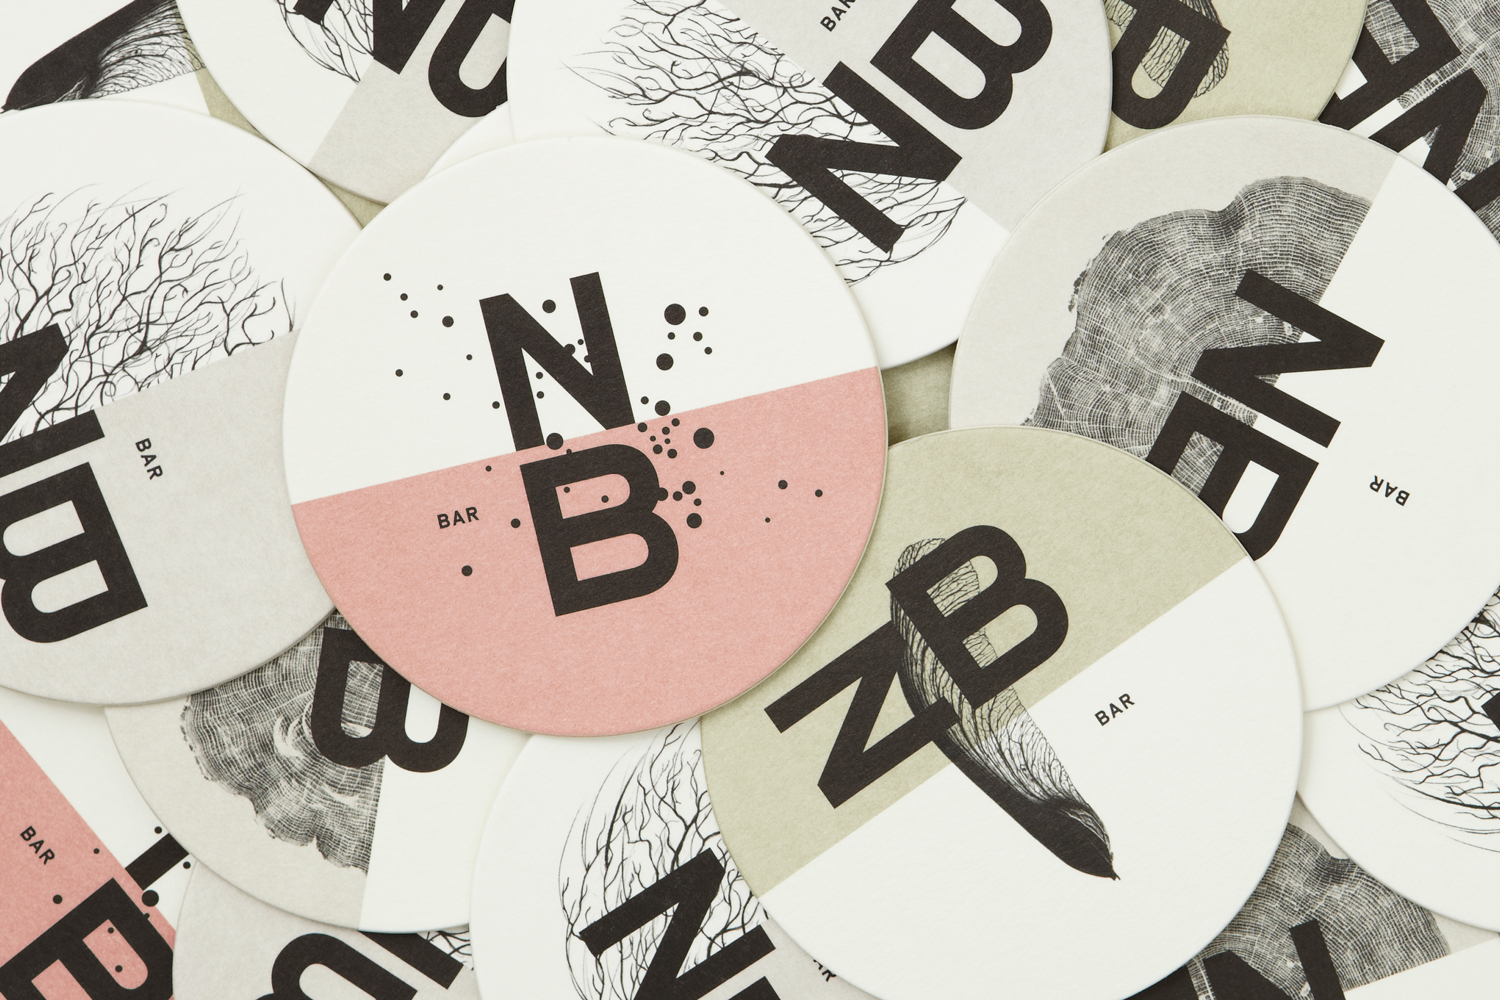 Brand identity and coasters for Toronto restaurant Nota Bene by graphic design studio Blok, Canada